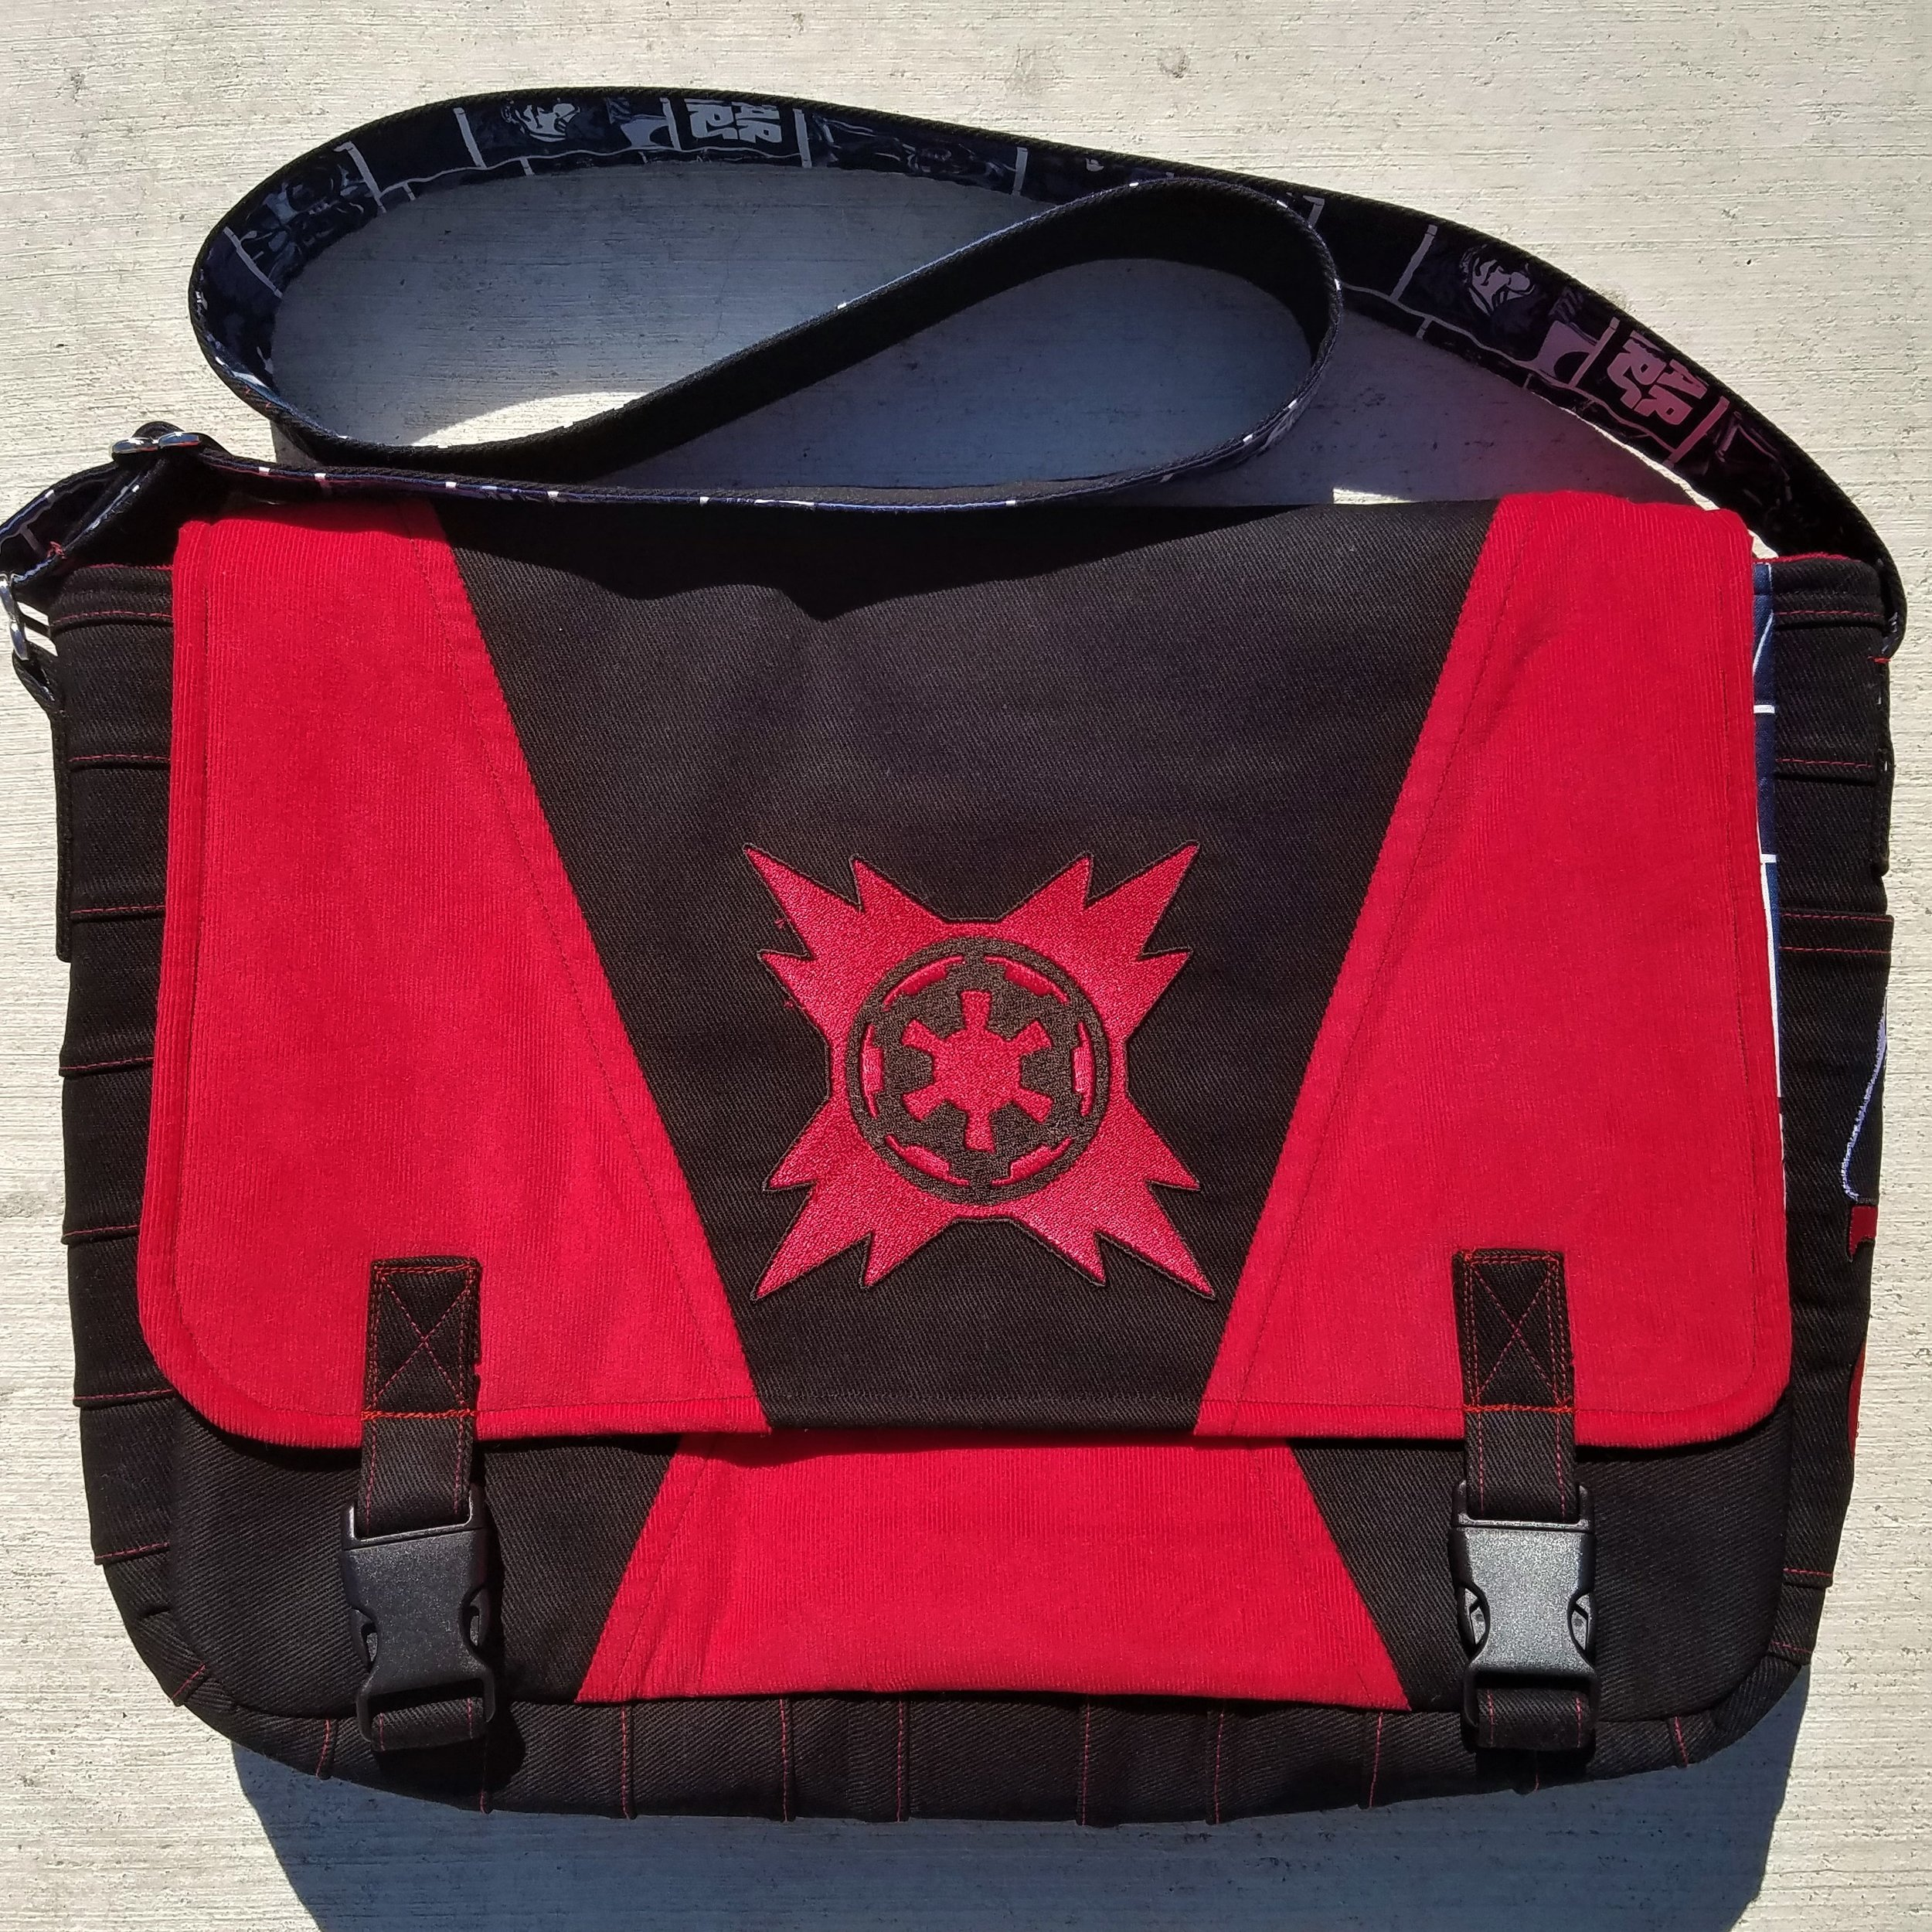 Tock Custom - Star Wars Sith Bag